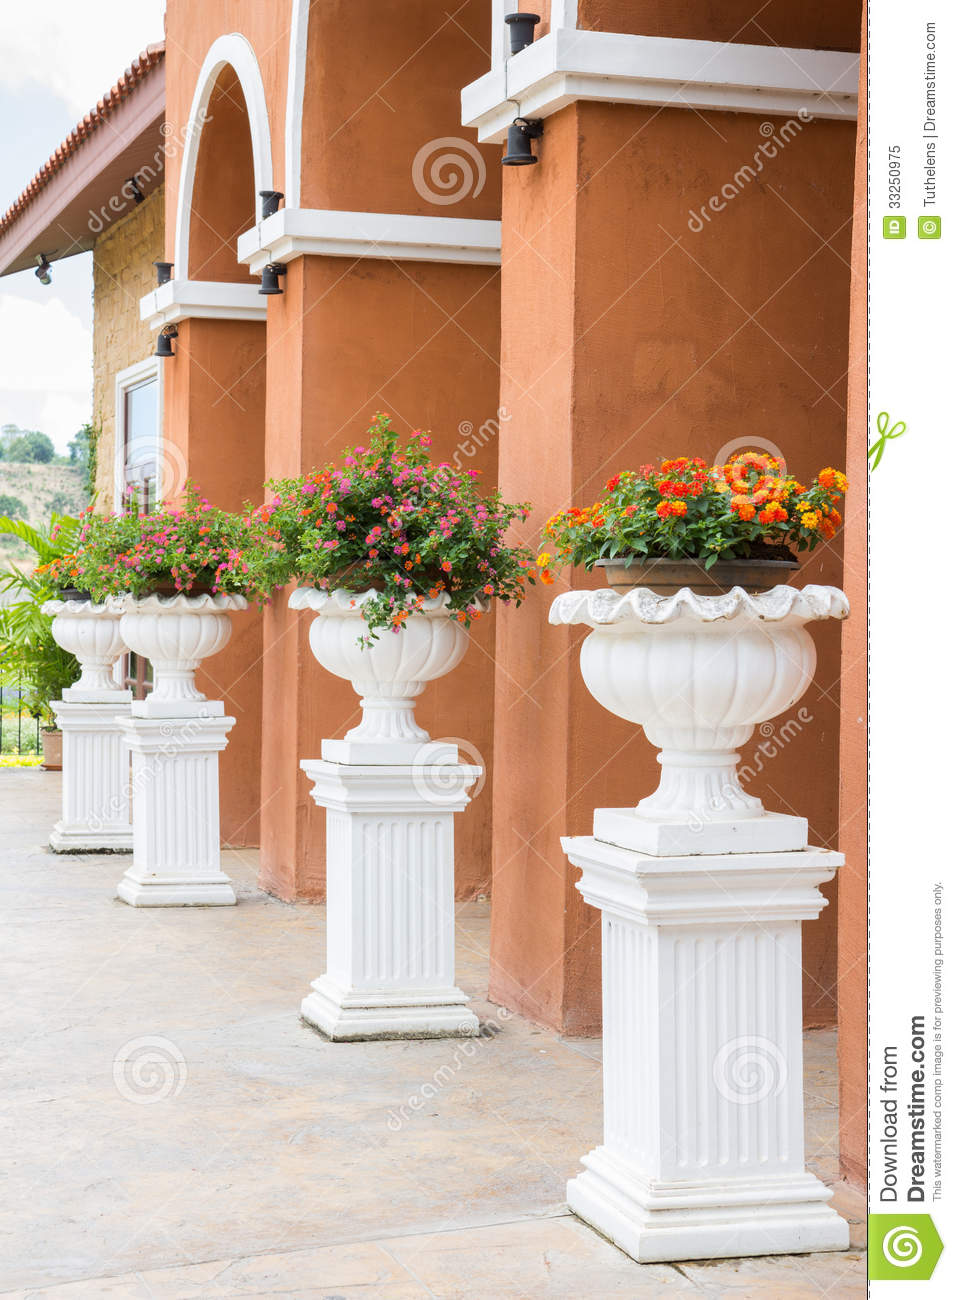 Pedestal Flower Stand Royalty Free Stock Photo Image